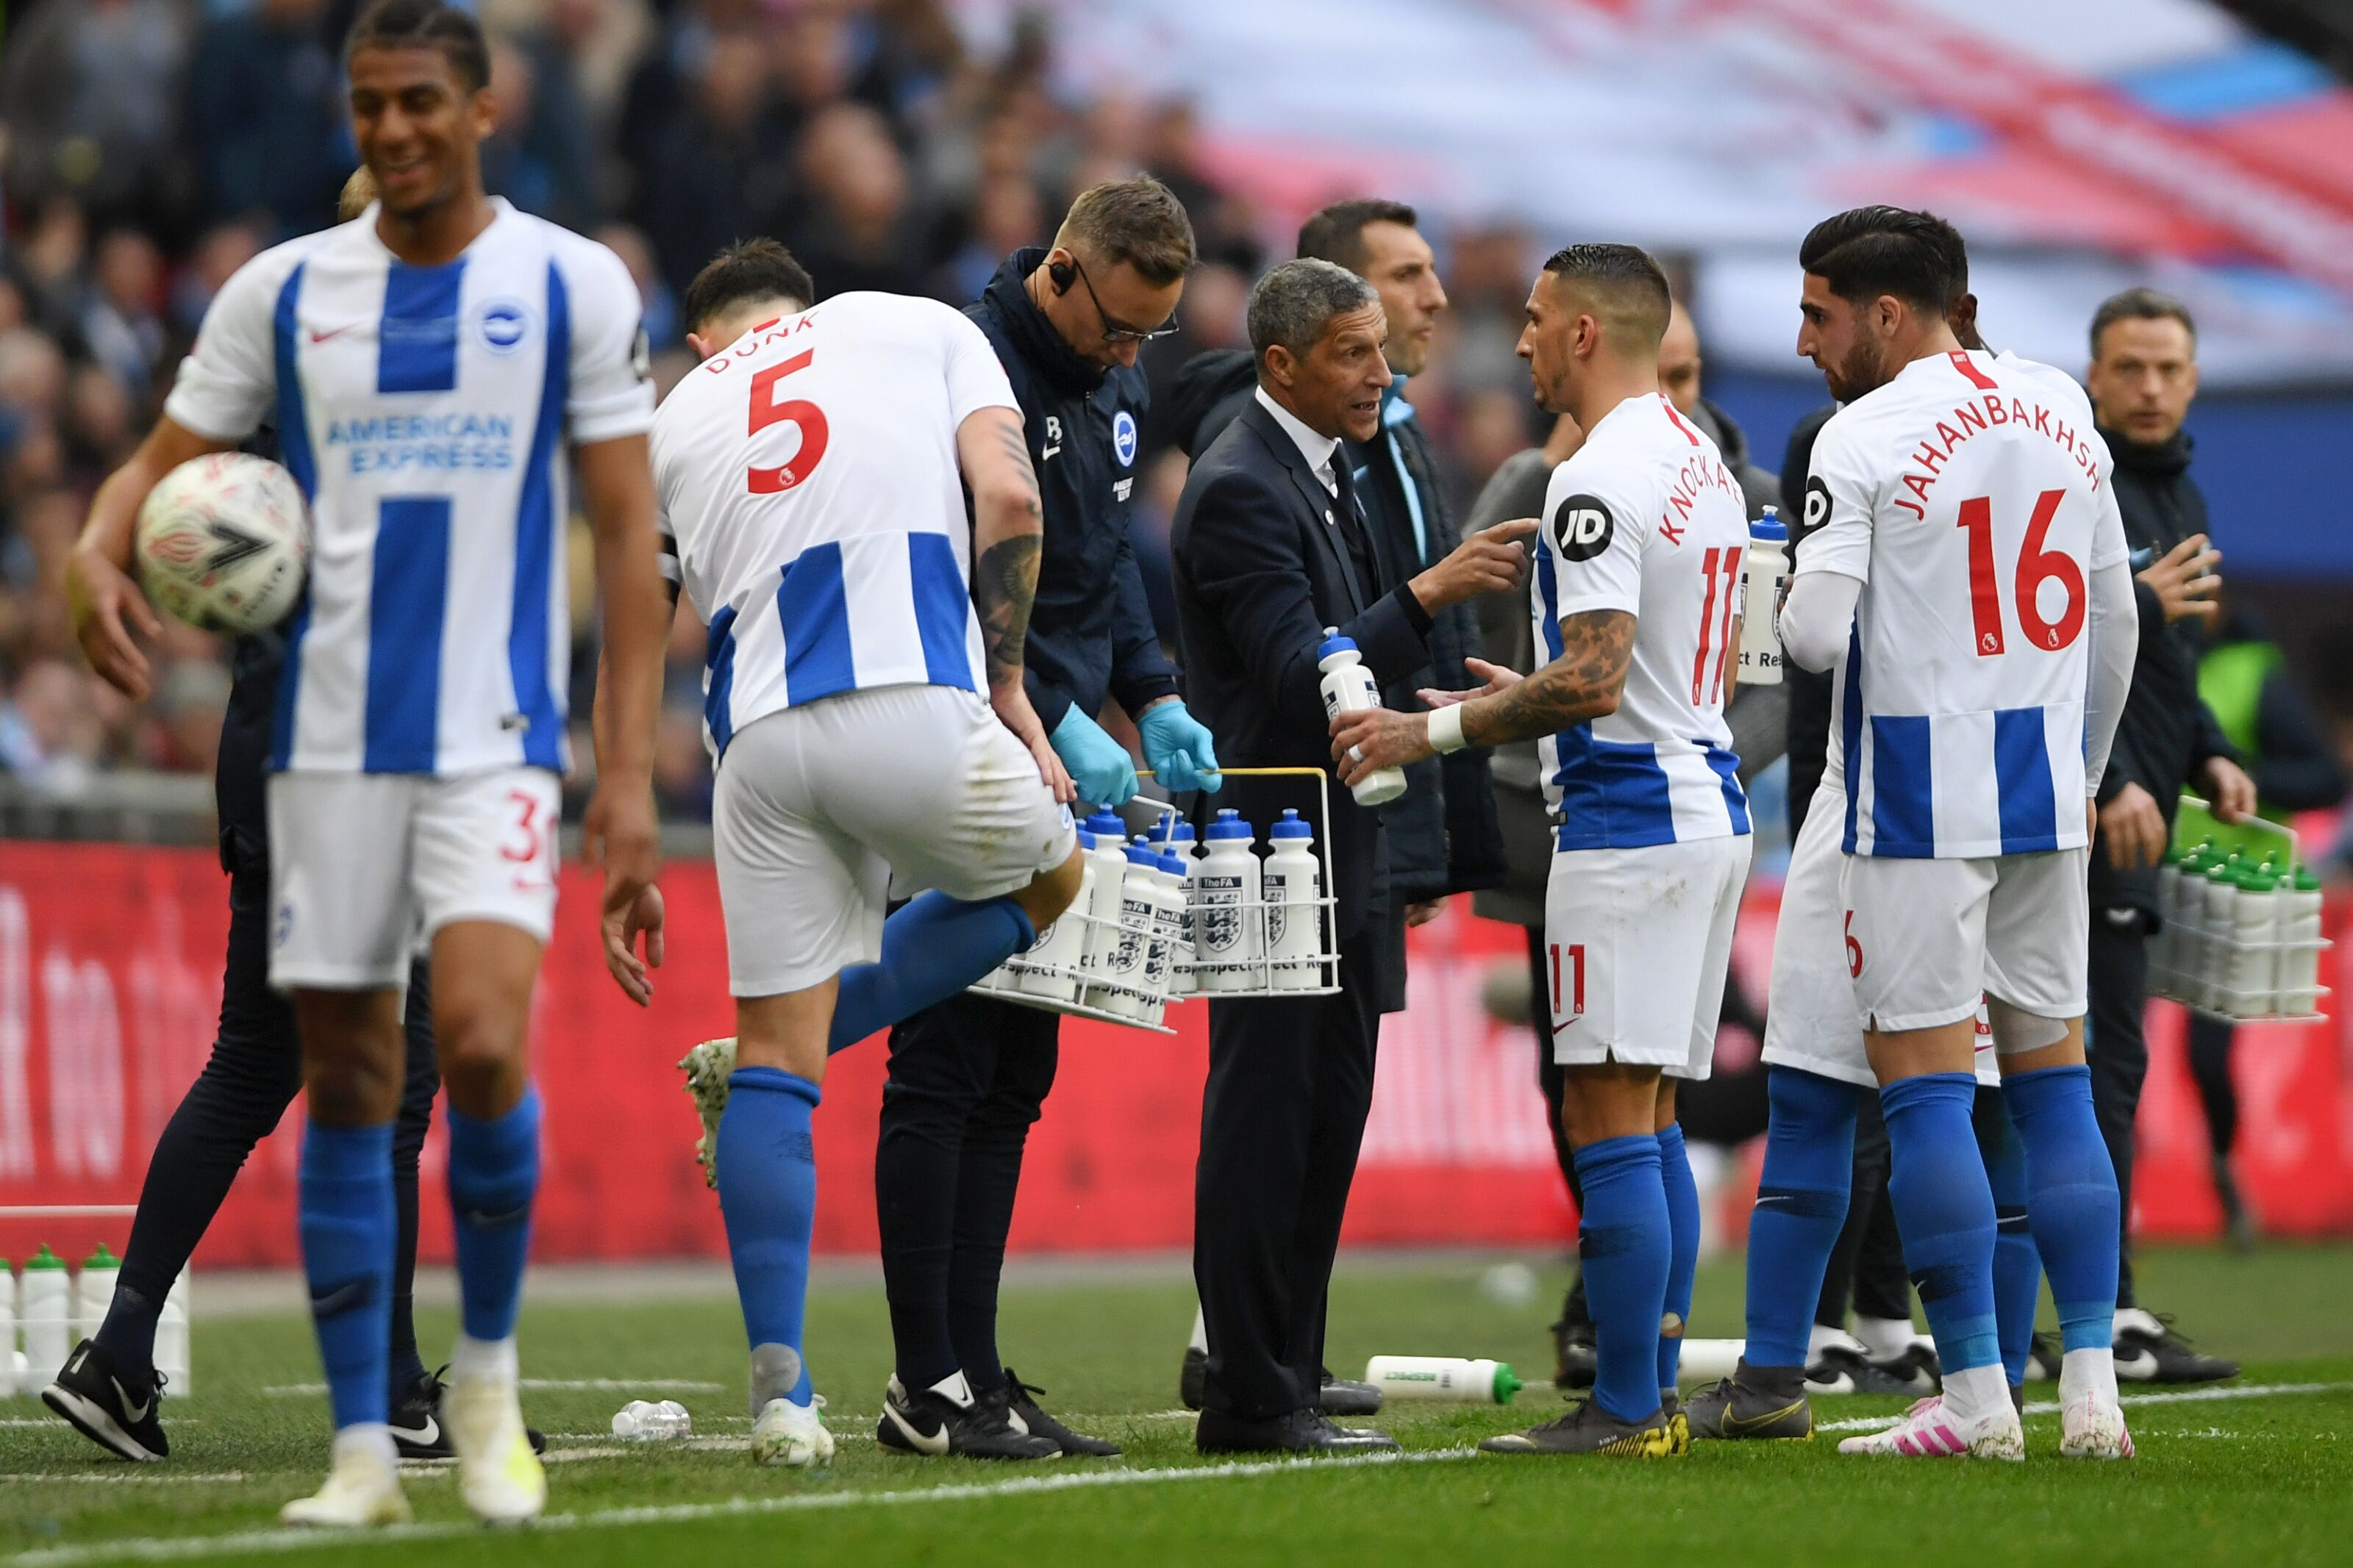 Chris Hughton favourite for next Premier League manager to be sacked